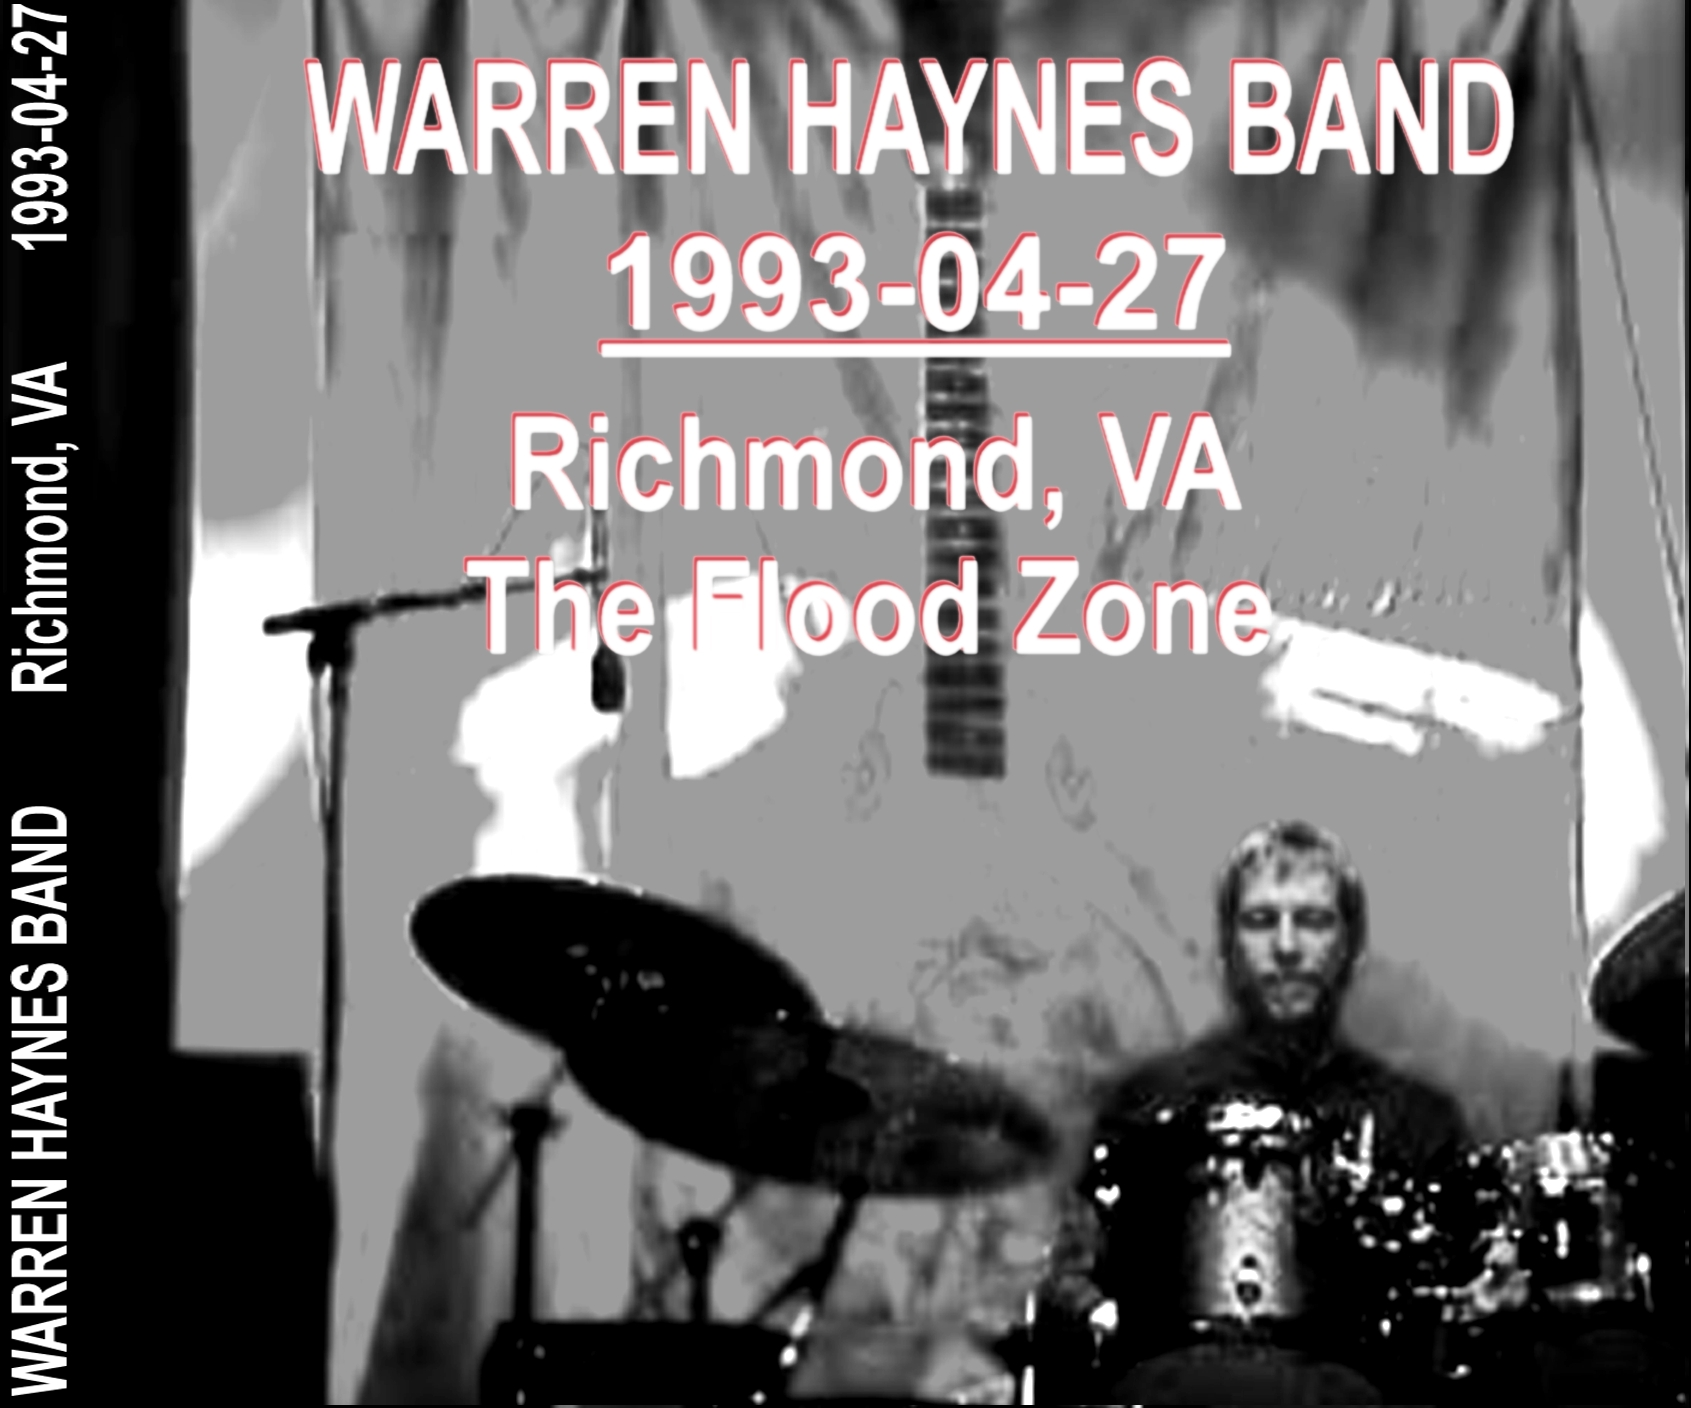 WarrenHaynesBand1993-04-27TheFloodZoneRichmondVA (1).jpg